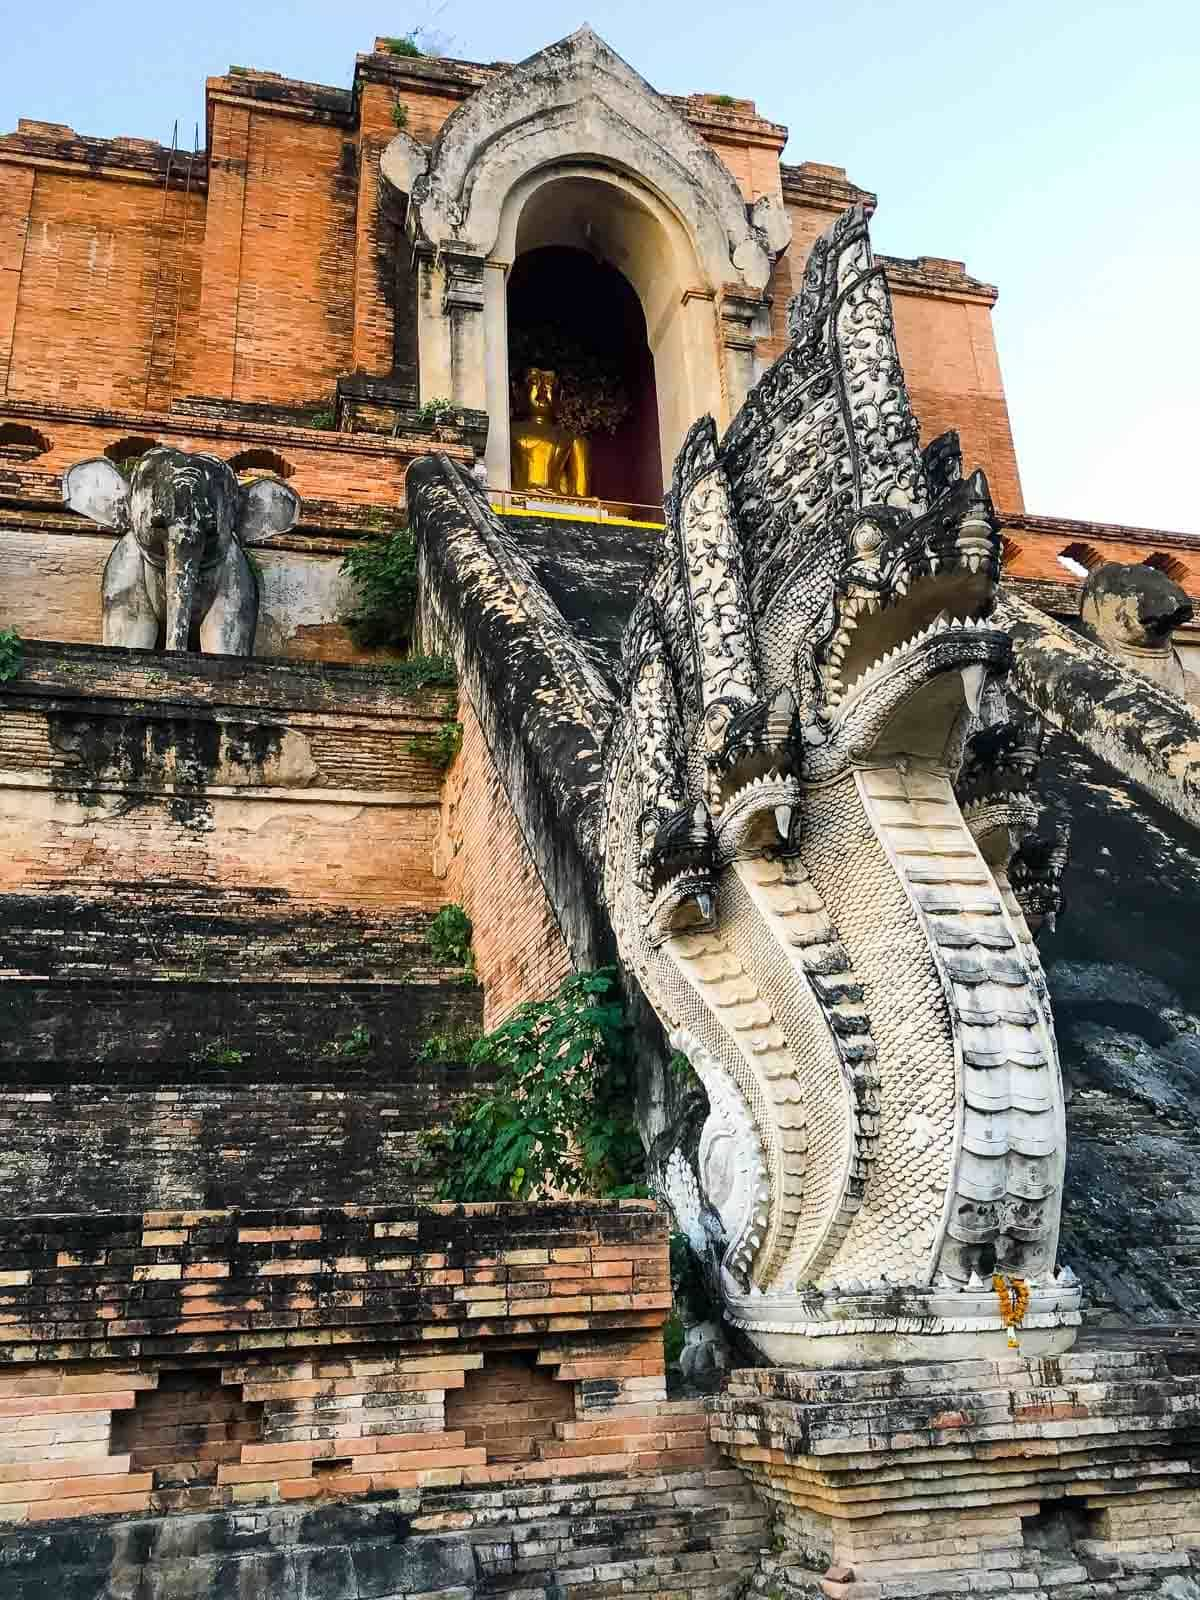 Oldest temple (wat) in Chiang Mai